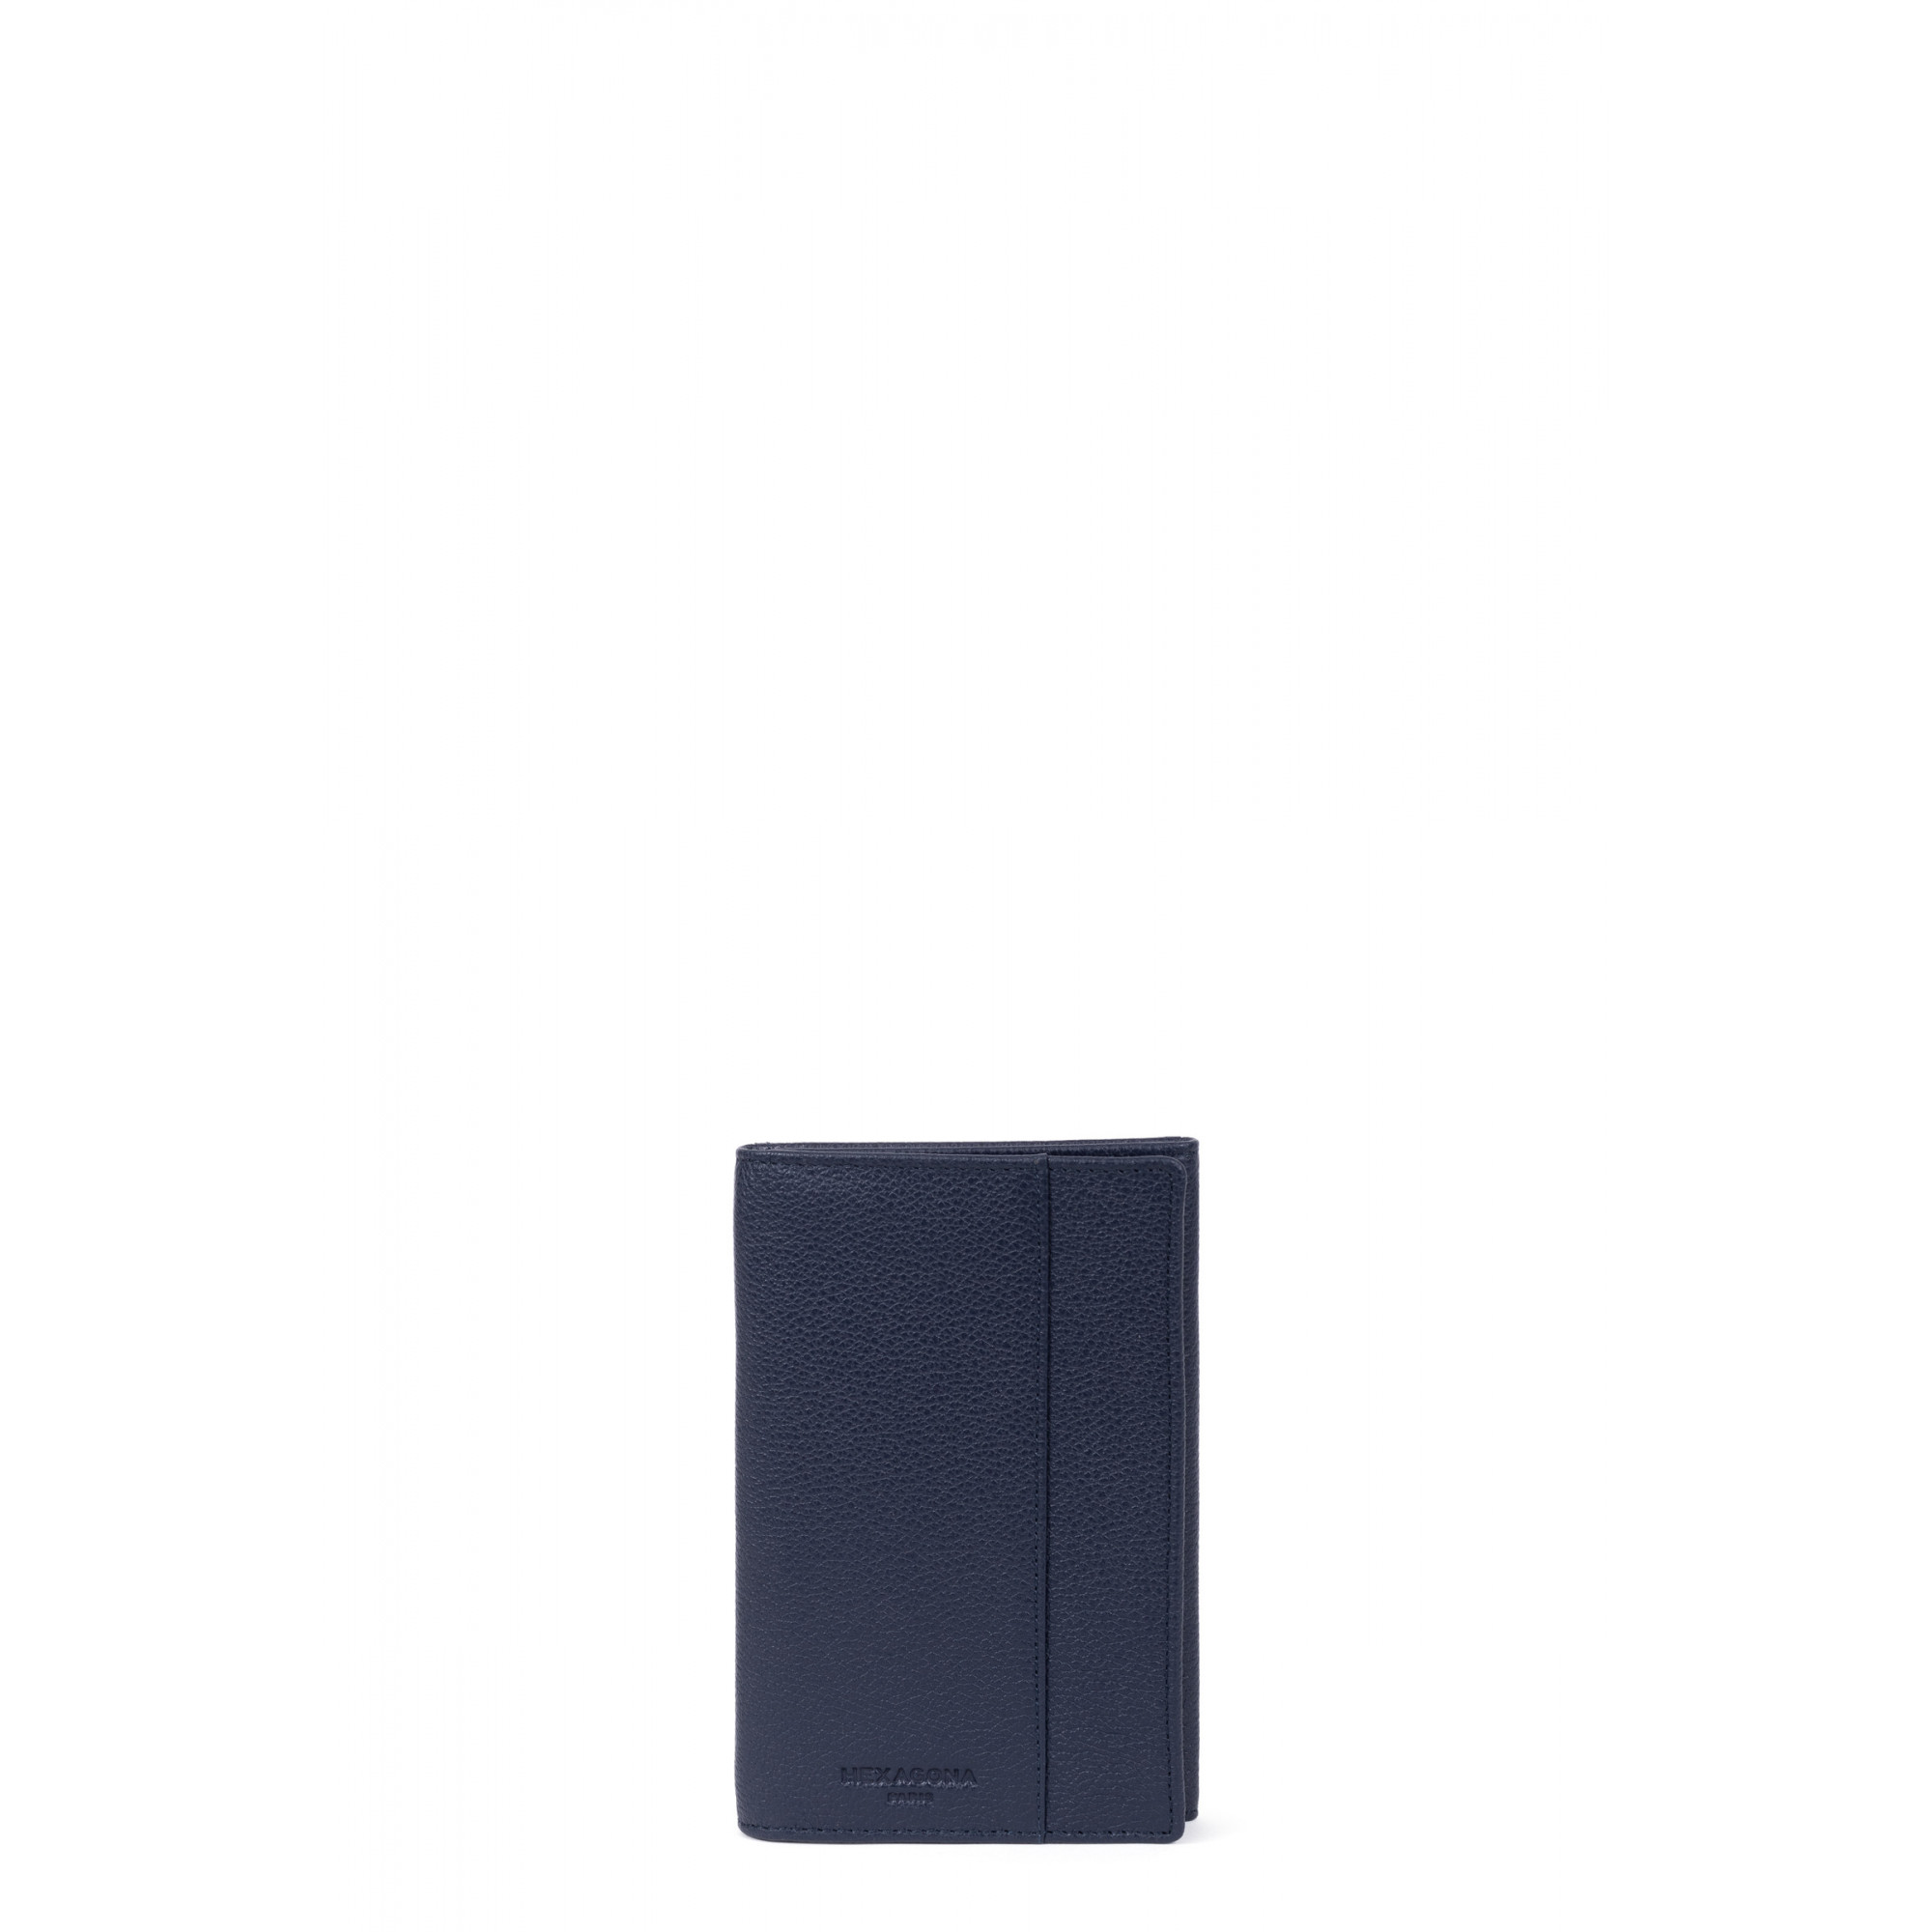 Grained leather documents holder